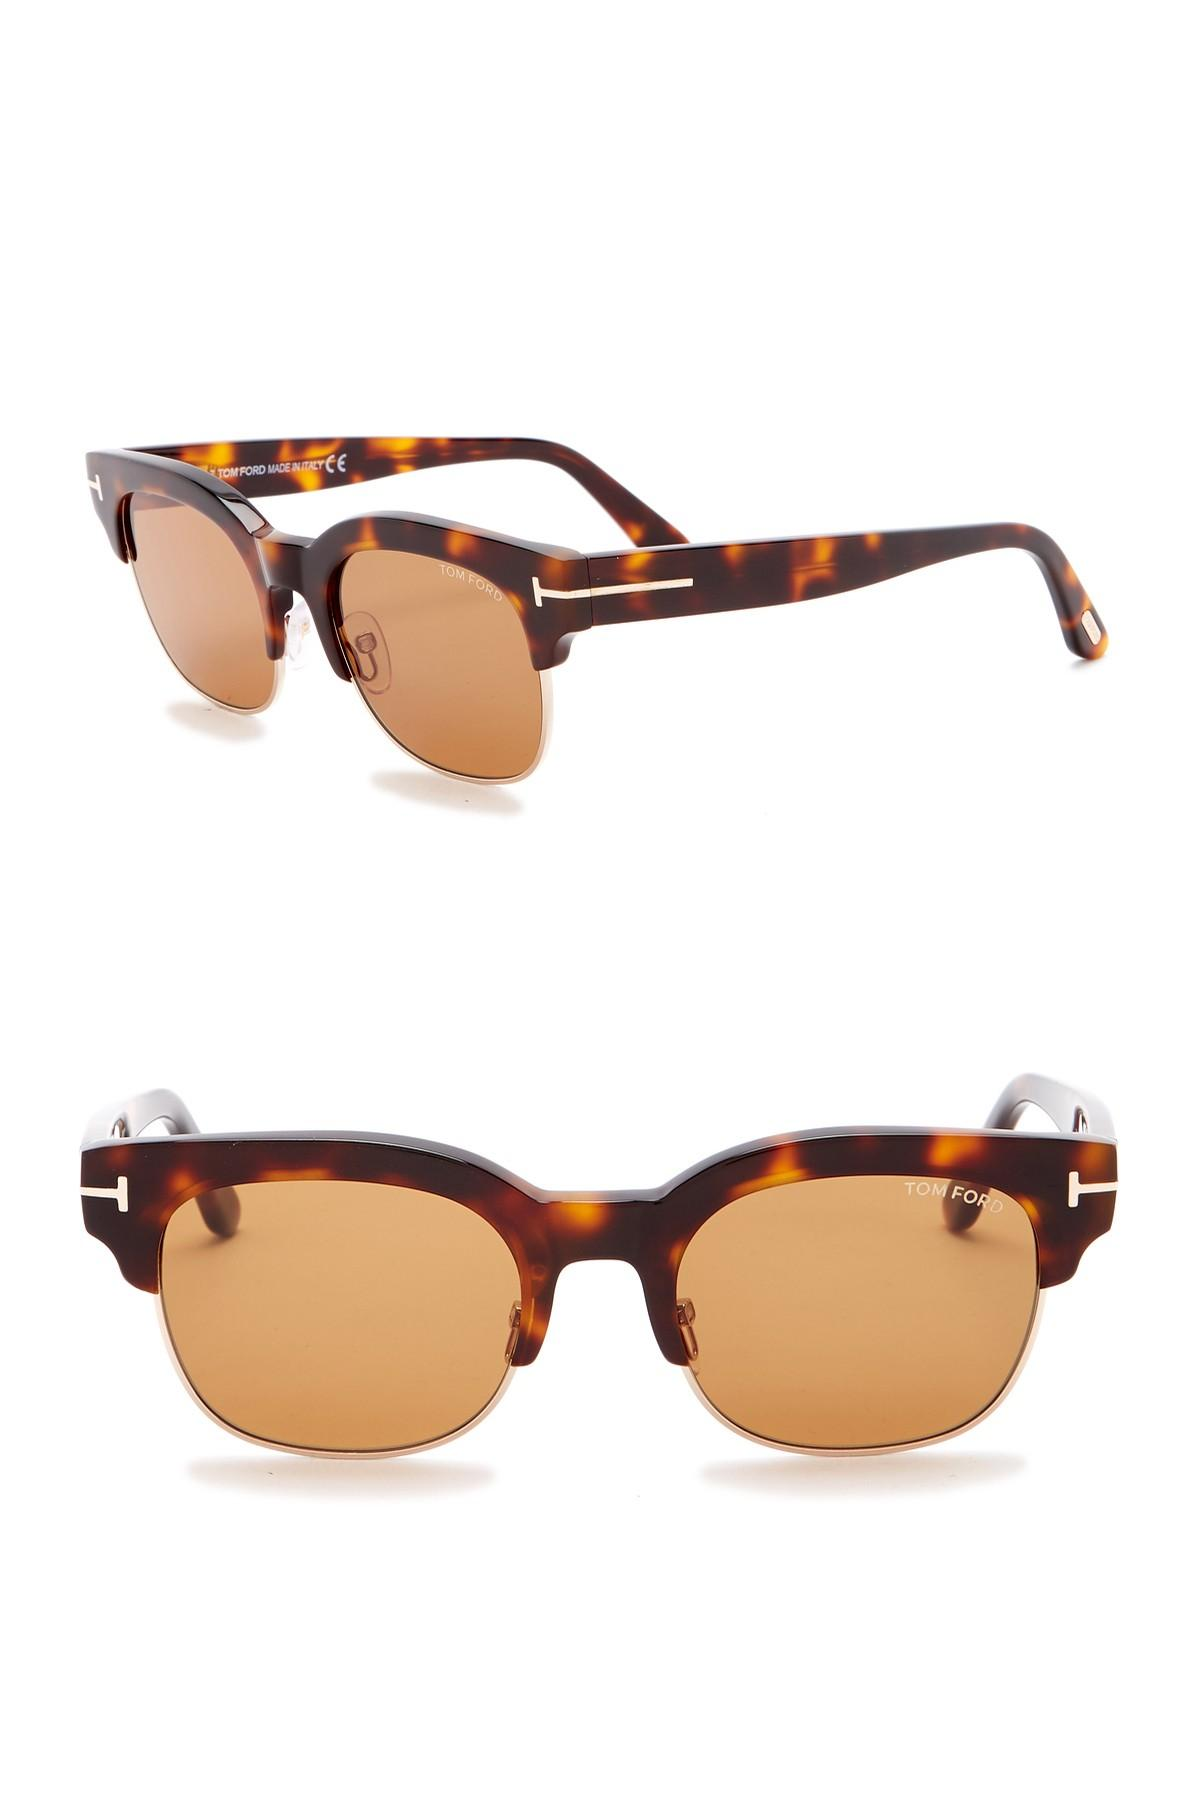 514a9d5c113 Lyst - Tom Ford Harry 51mm Clubmaster Sunglasses in Brown for Men